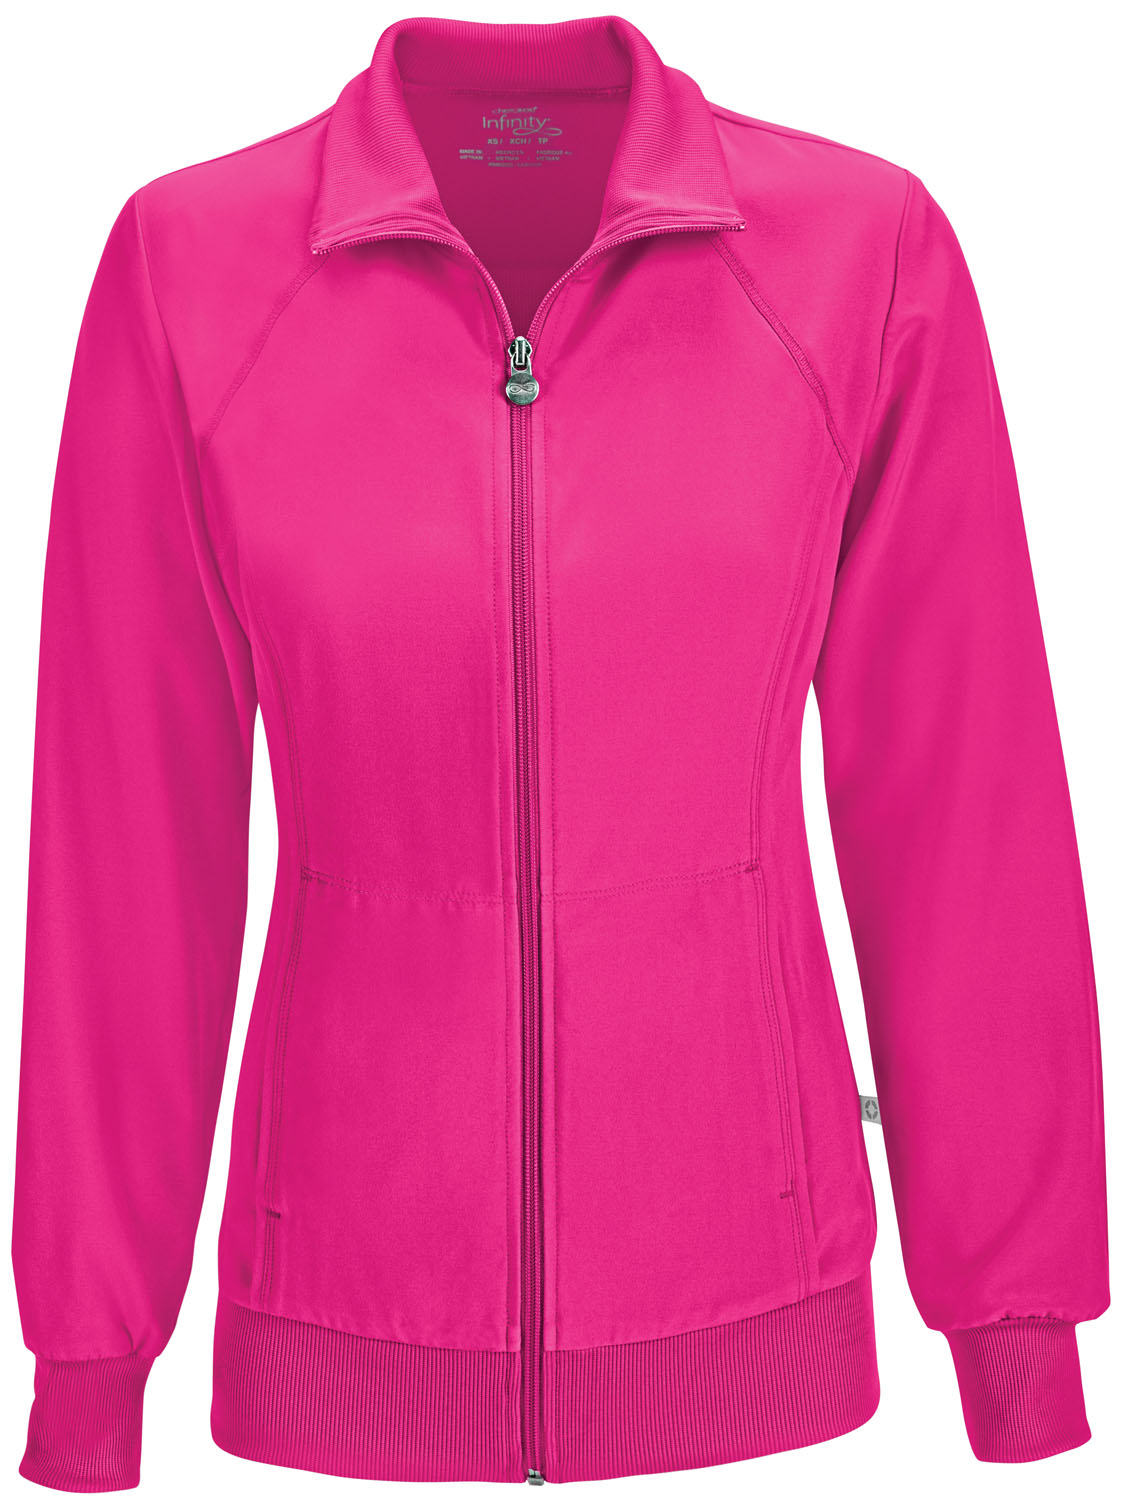 Infinity by Cherokee Zip Front Warm-Up Jacket 2391A-CPPS